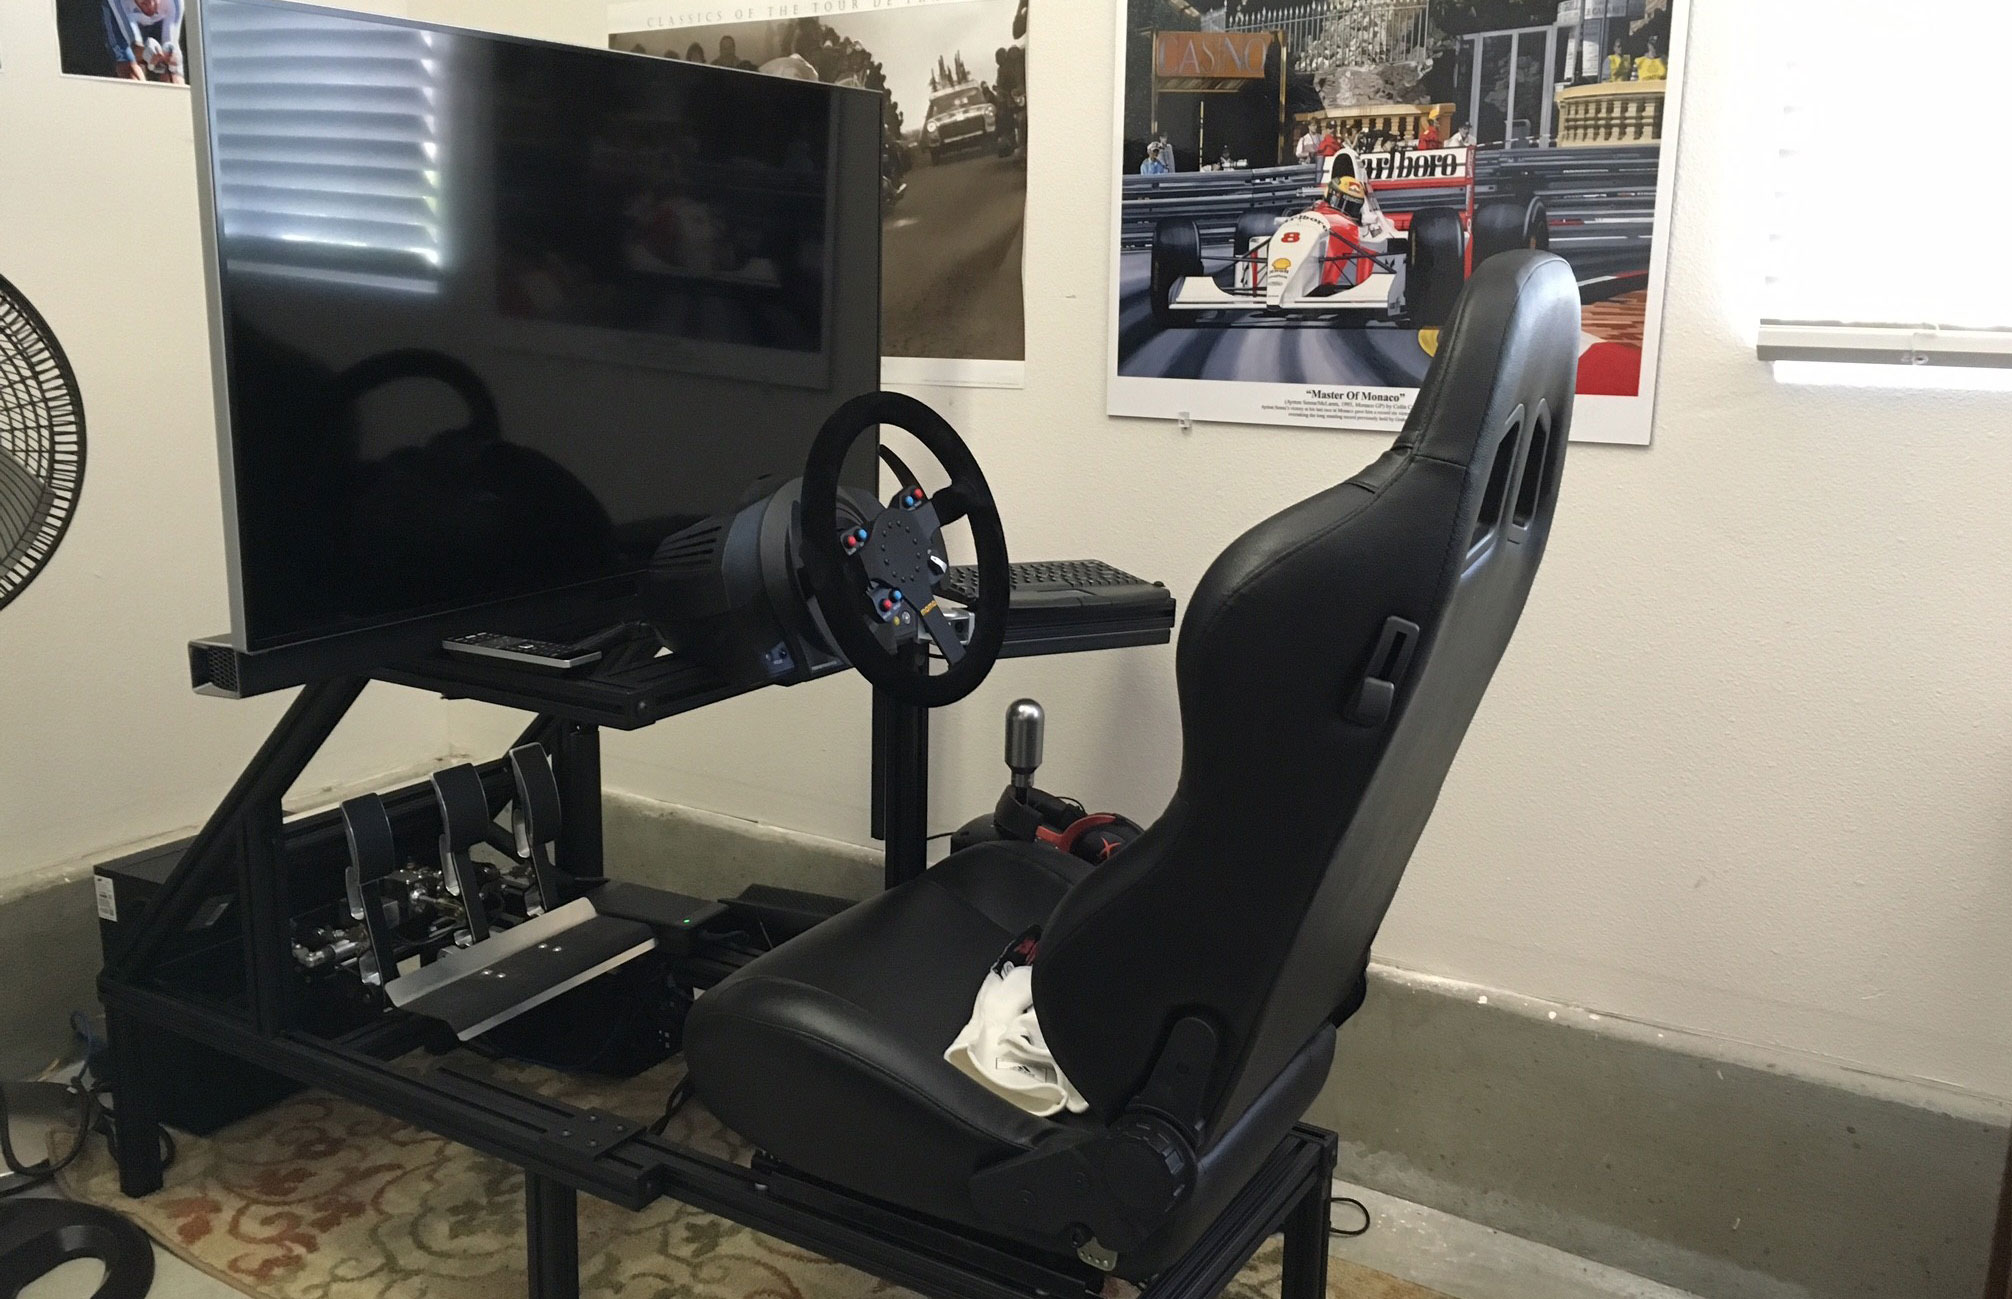 Peter Attia's Racing Simulator